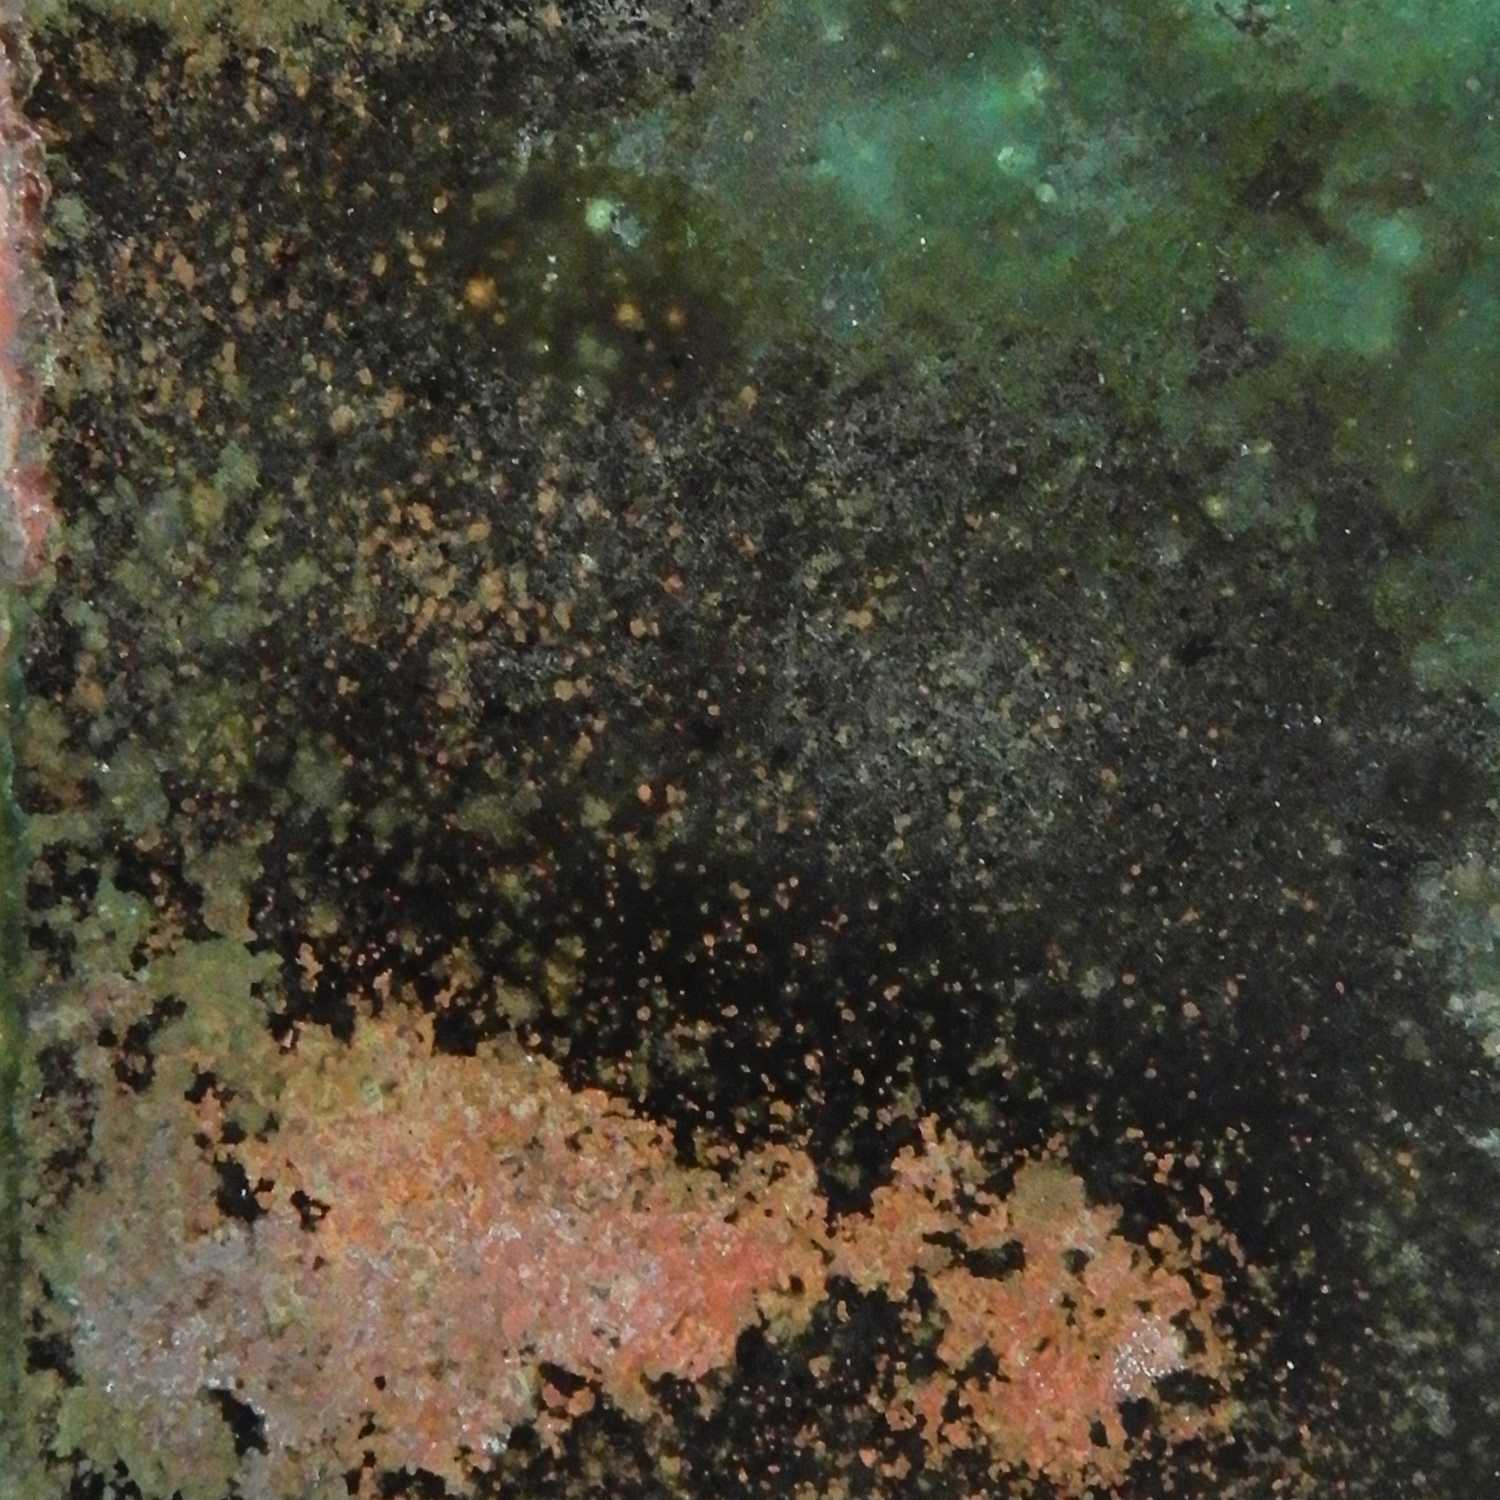 Annealed and sanded by sandpaper. Soaked in solution of copper sulfate, kosher salt and water for four days.  Size: 2 x 2 in